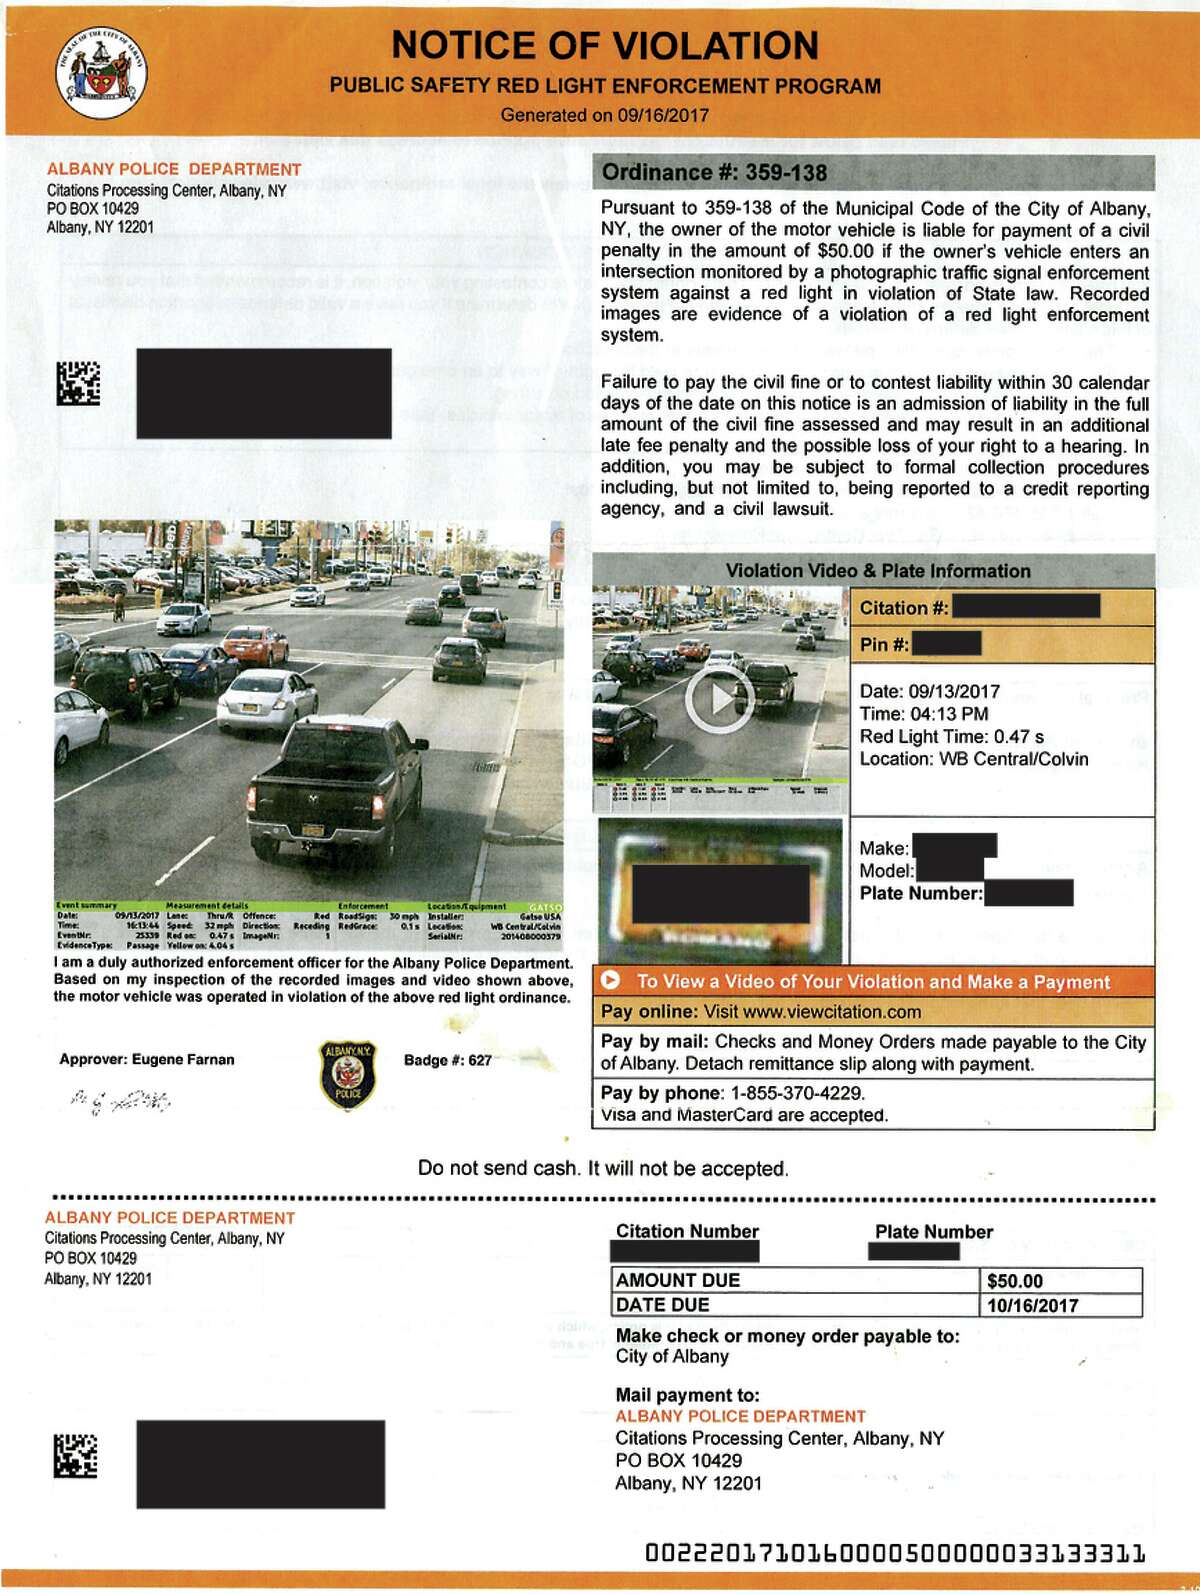 This violation ticket shows a Toyota Prius running a red light at Central and Colvin Avenues in Albany in September 2017. (Courtesy of Amanda Fries)